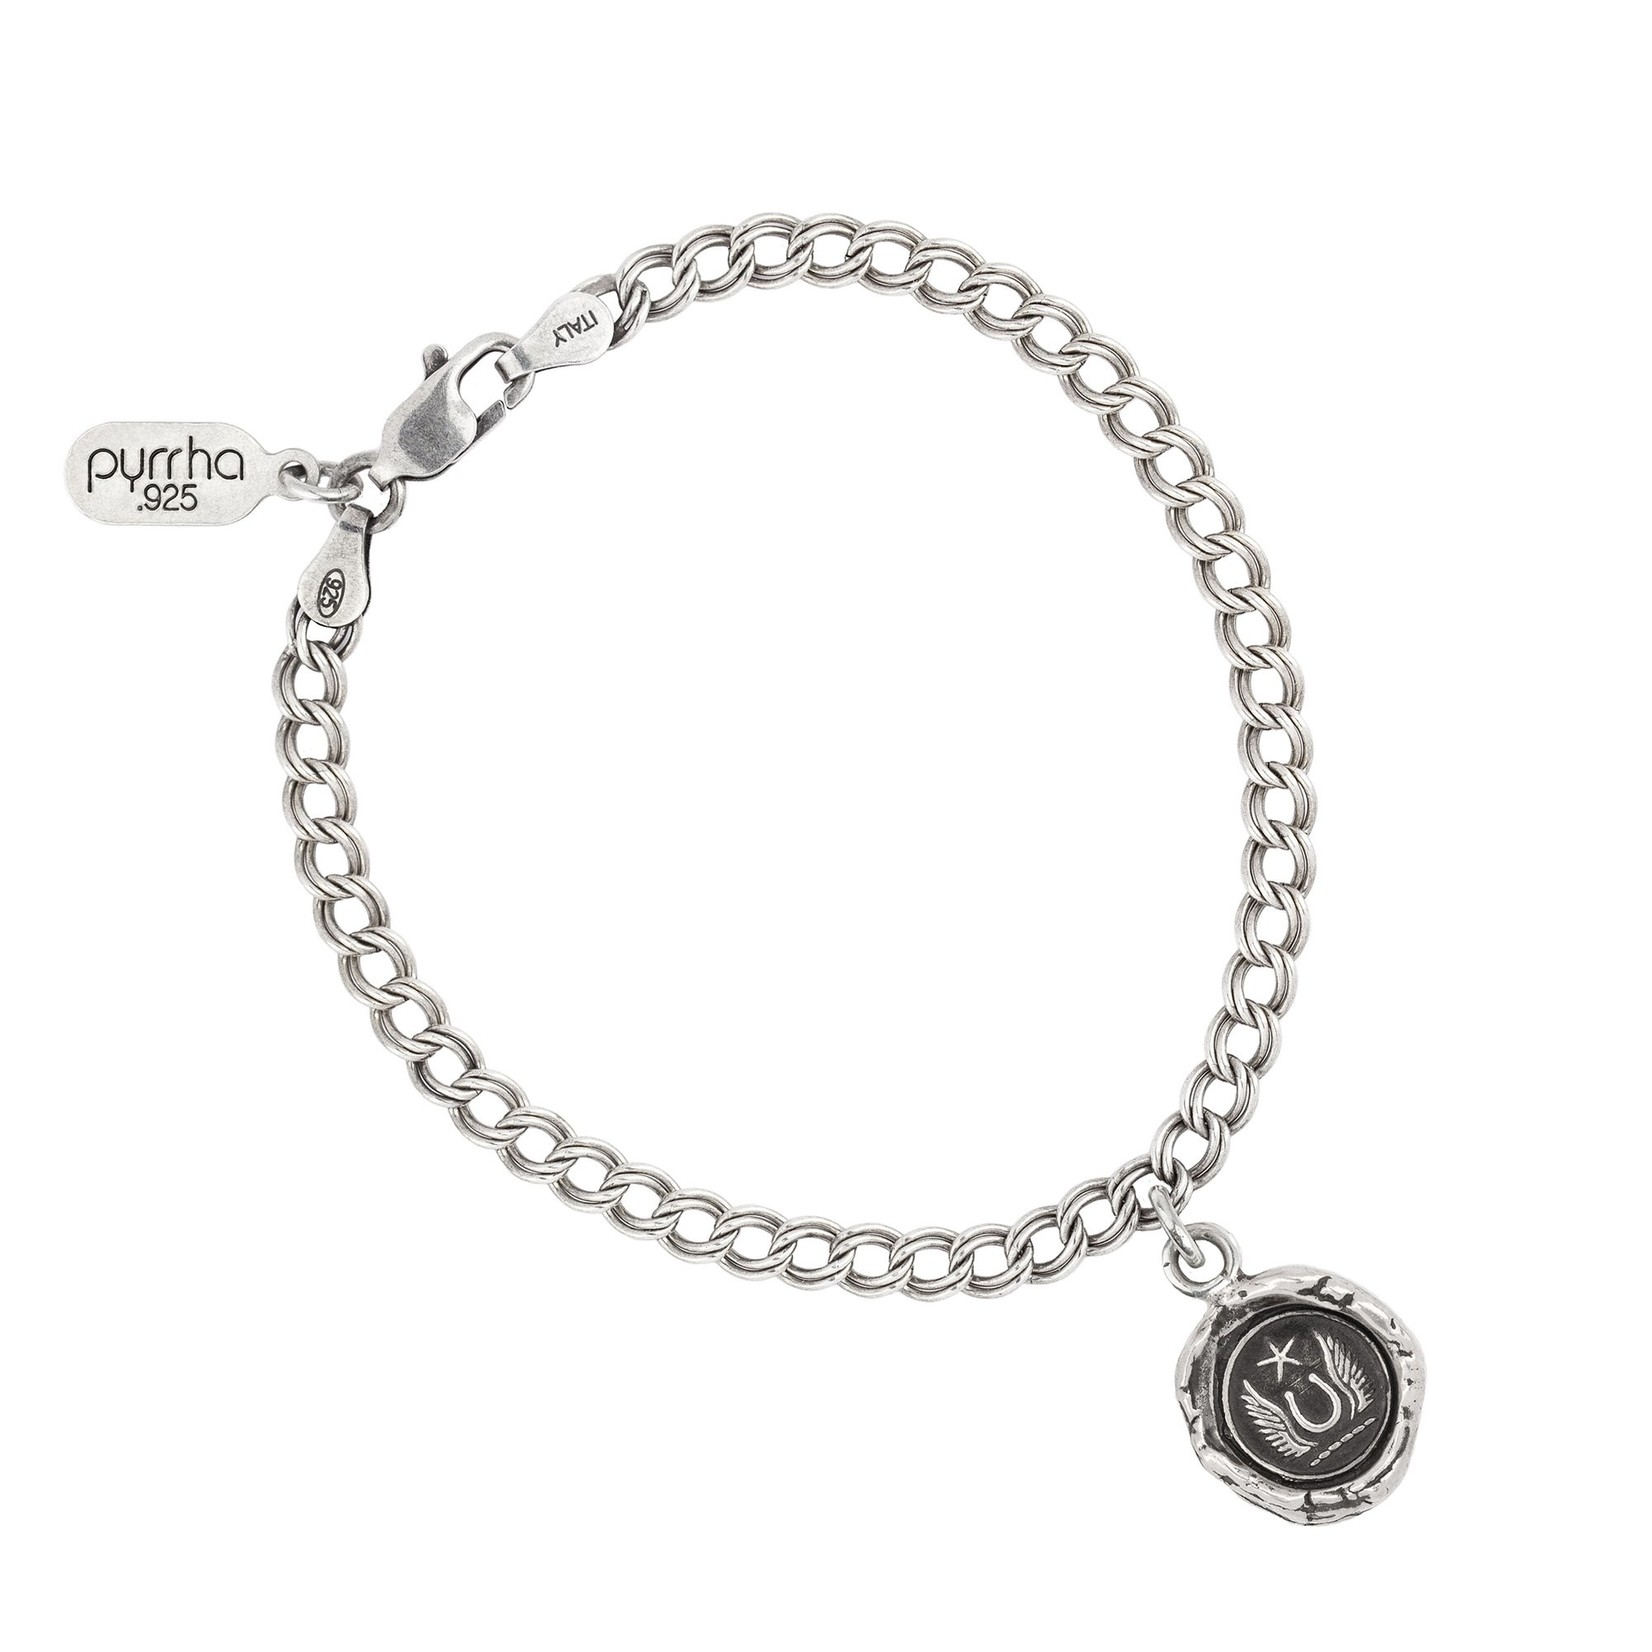 Pyrrha Luck & Protection Talisman Chain Bracelet